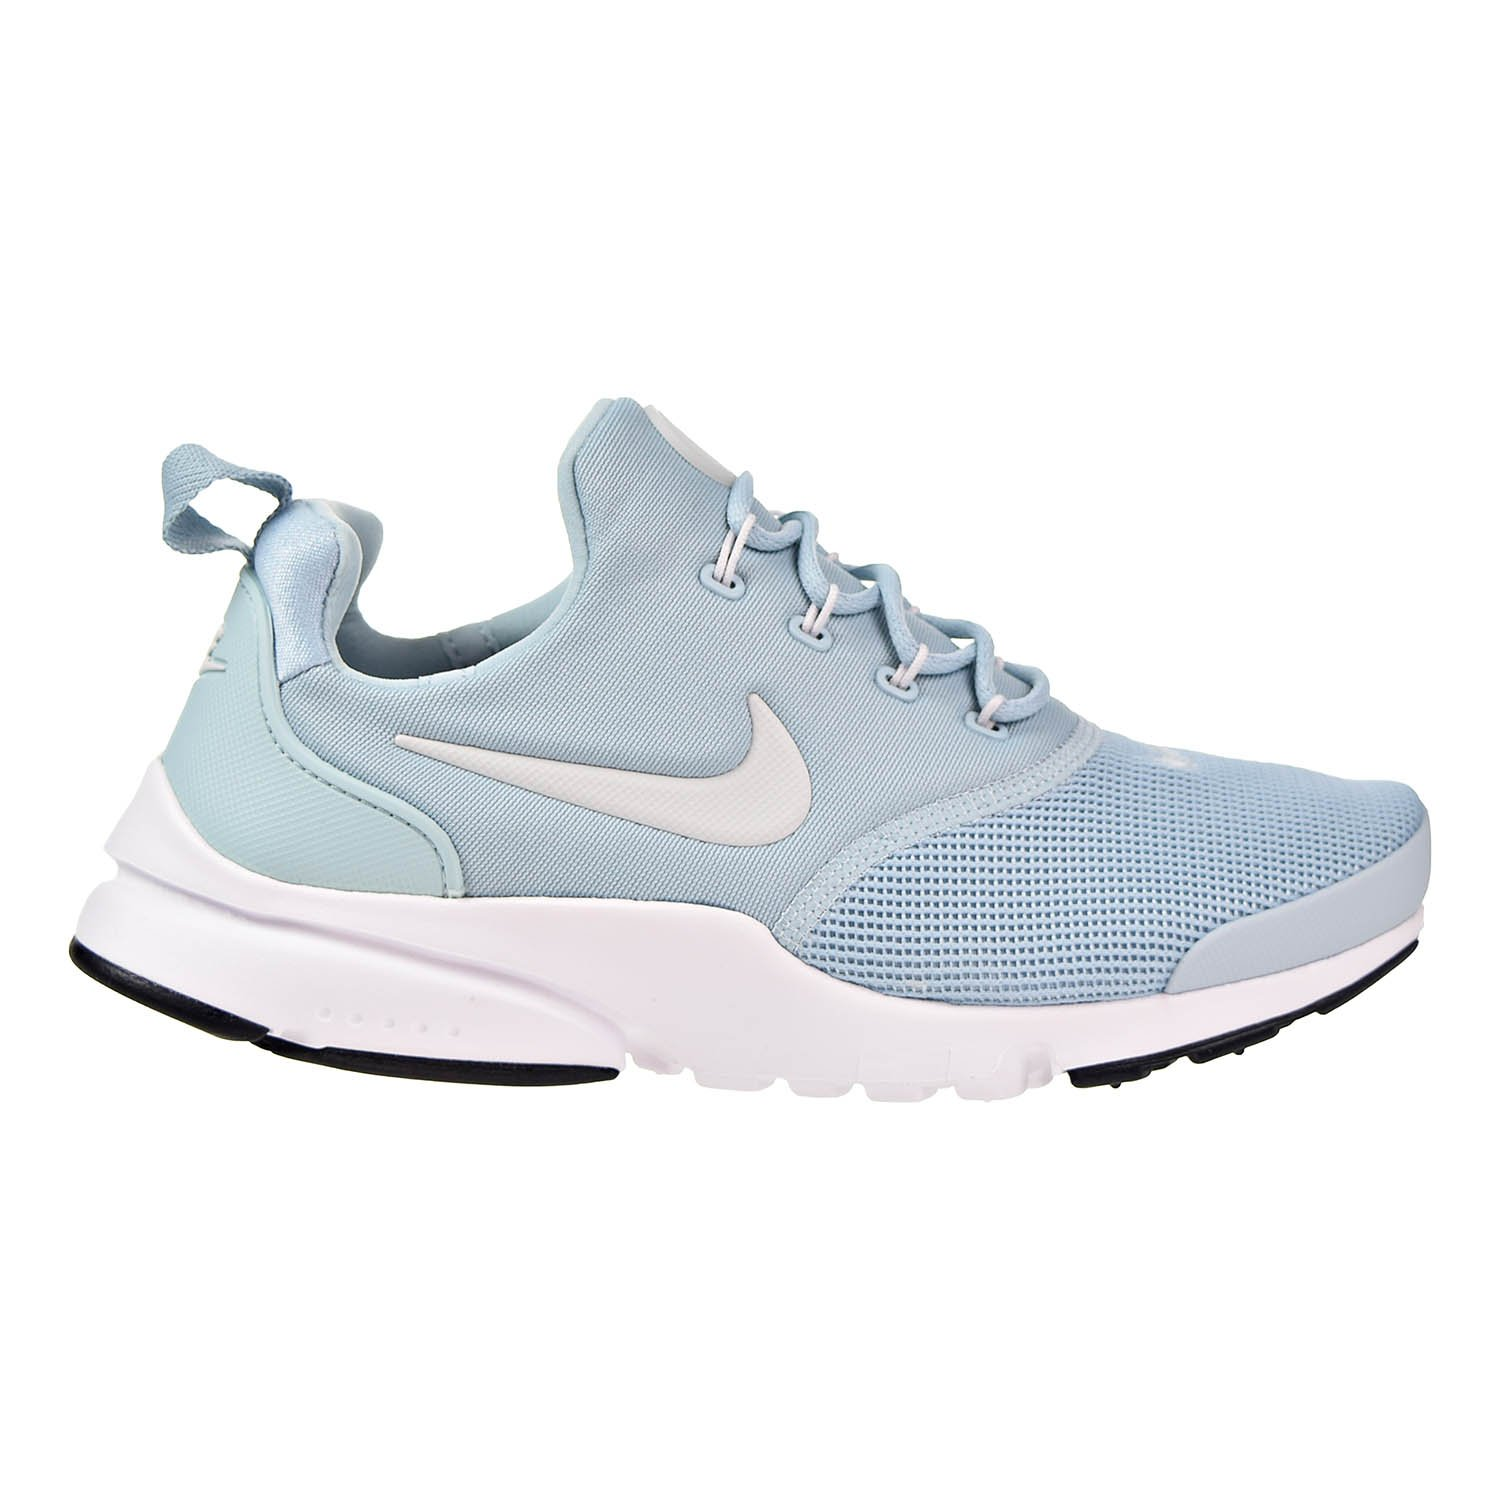 f22598936579 Nike Presto Fly (GS) Big Kids Shoes Ocean Bliss Pure Platinum 913967-401 (7  M US)  Amazon.co.uk  Shoes   Bags